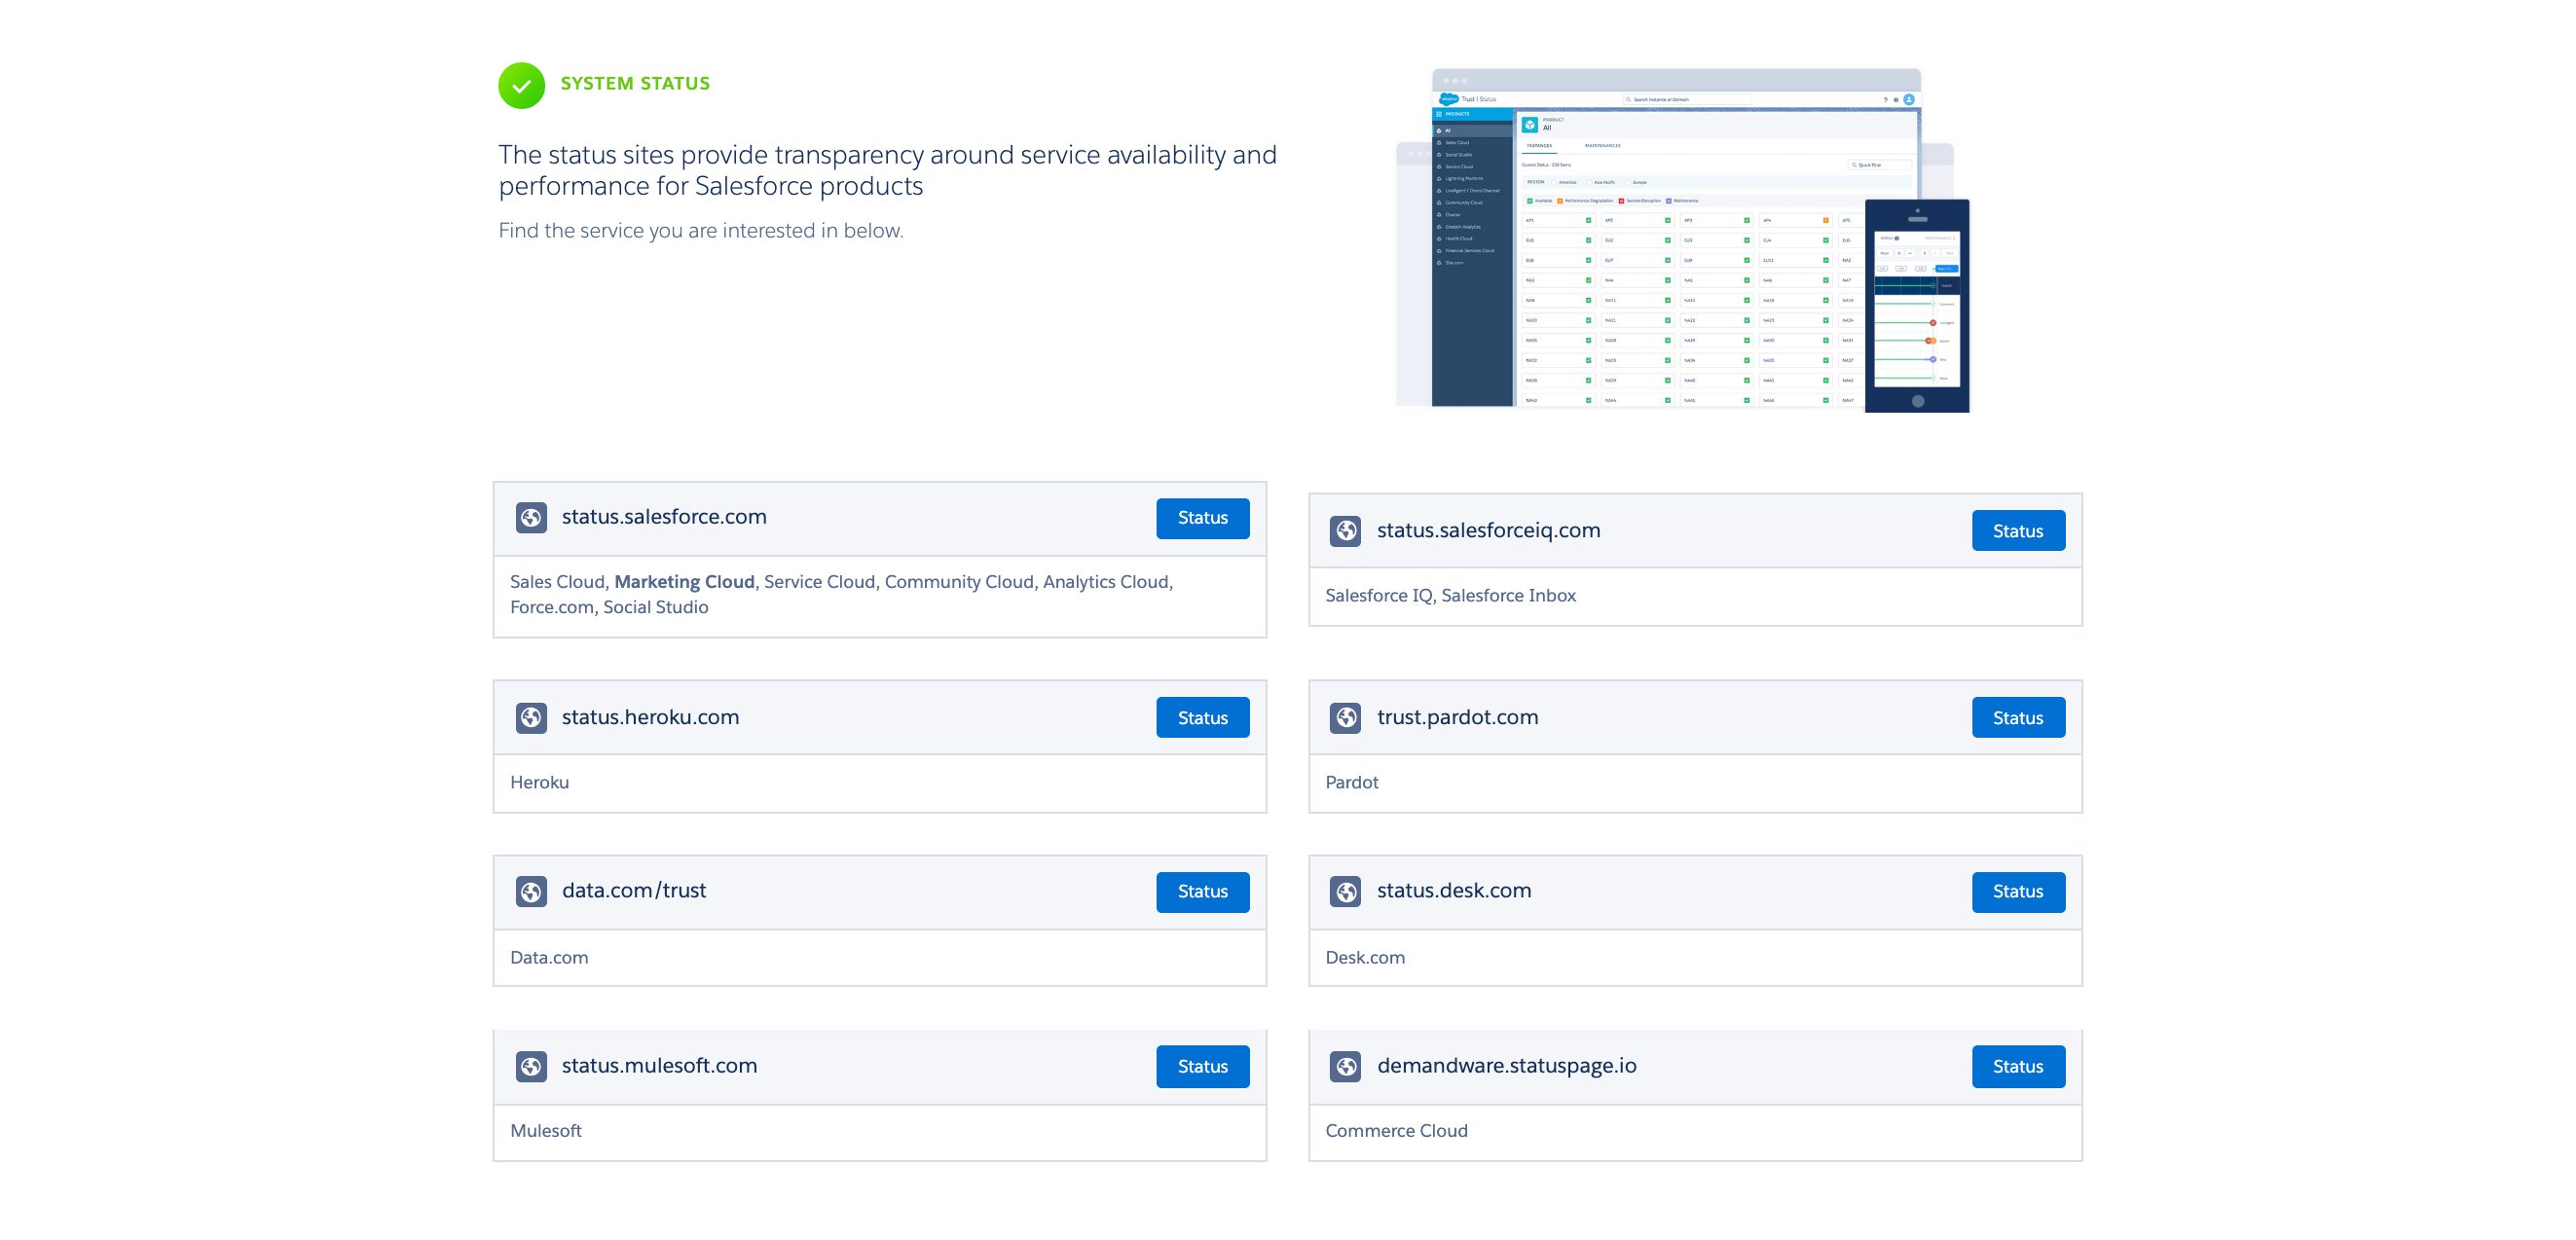 The System Status section of the Salesforce Trust site.